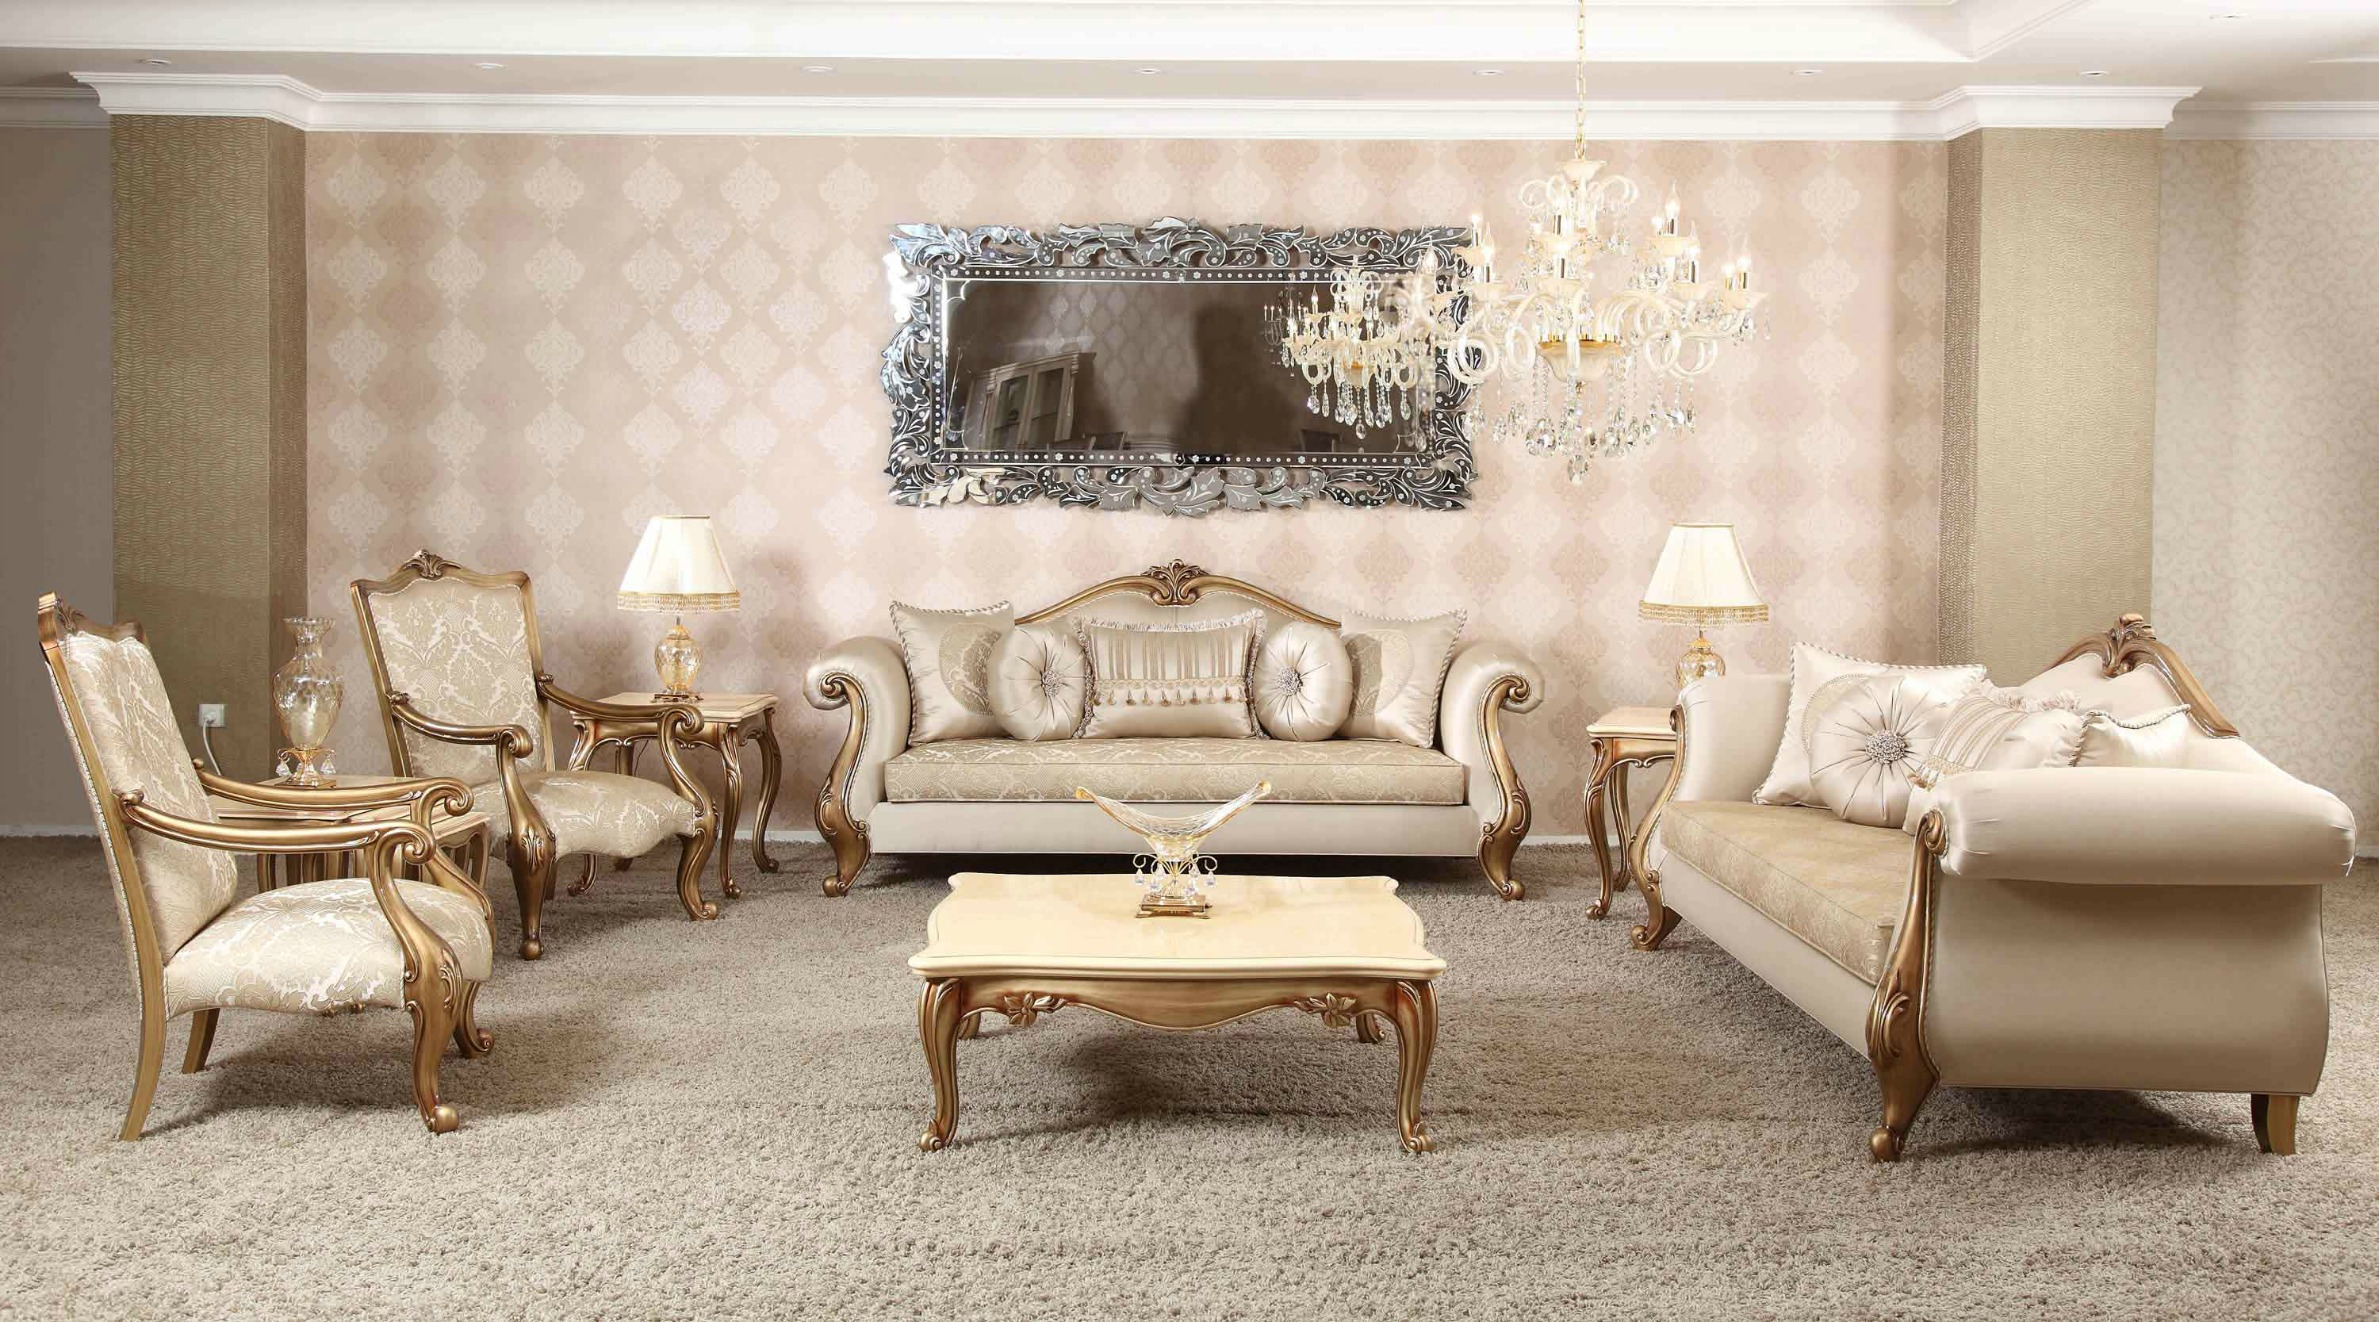 Meuble haidar1453376597011 - Meuble design tunisie ...